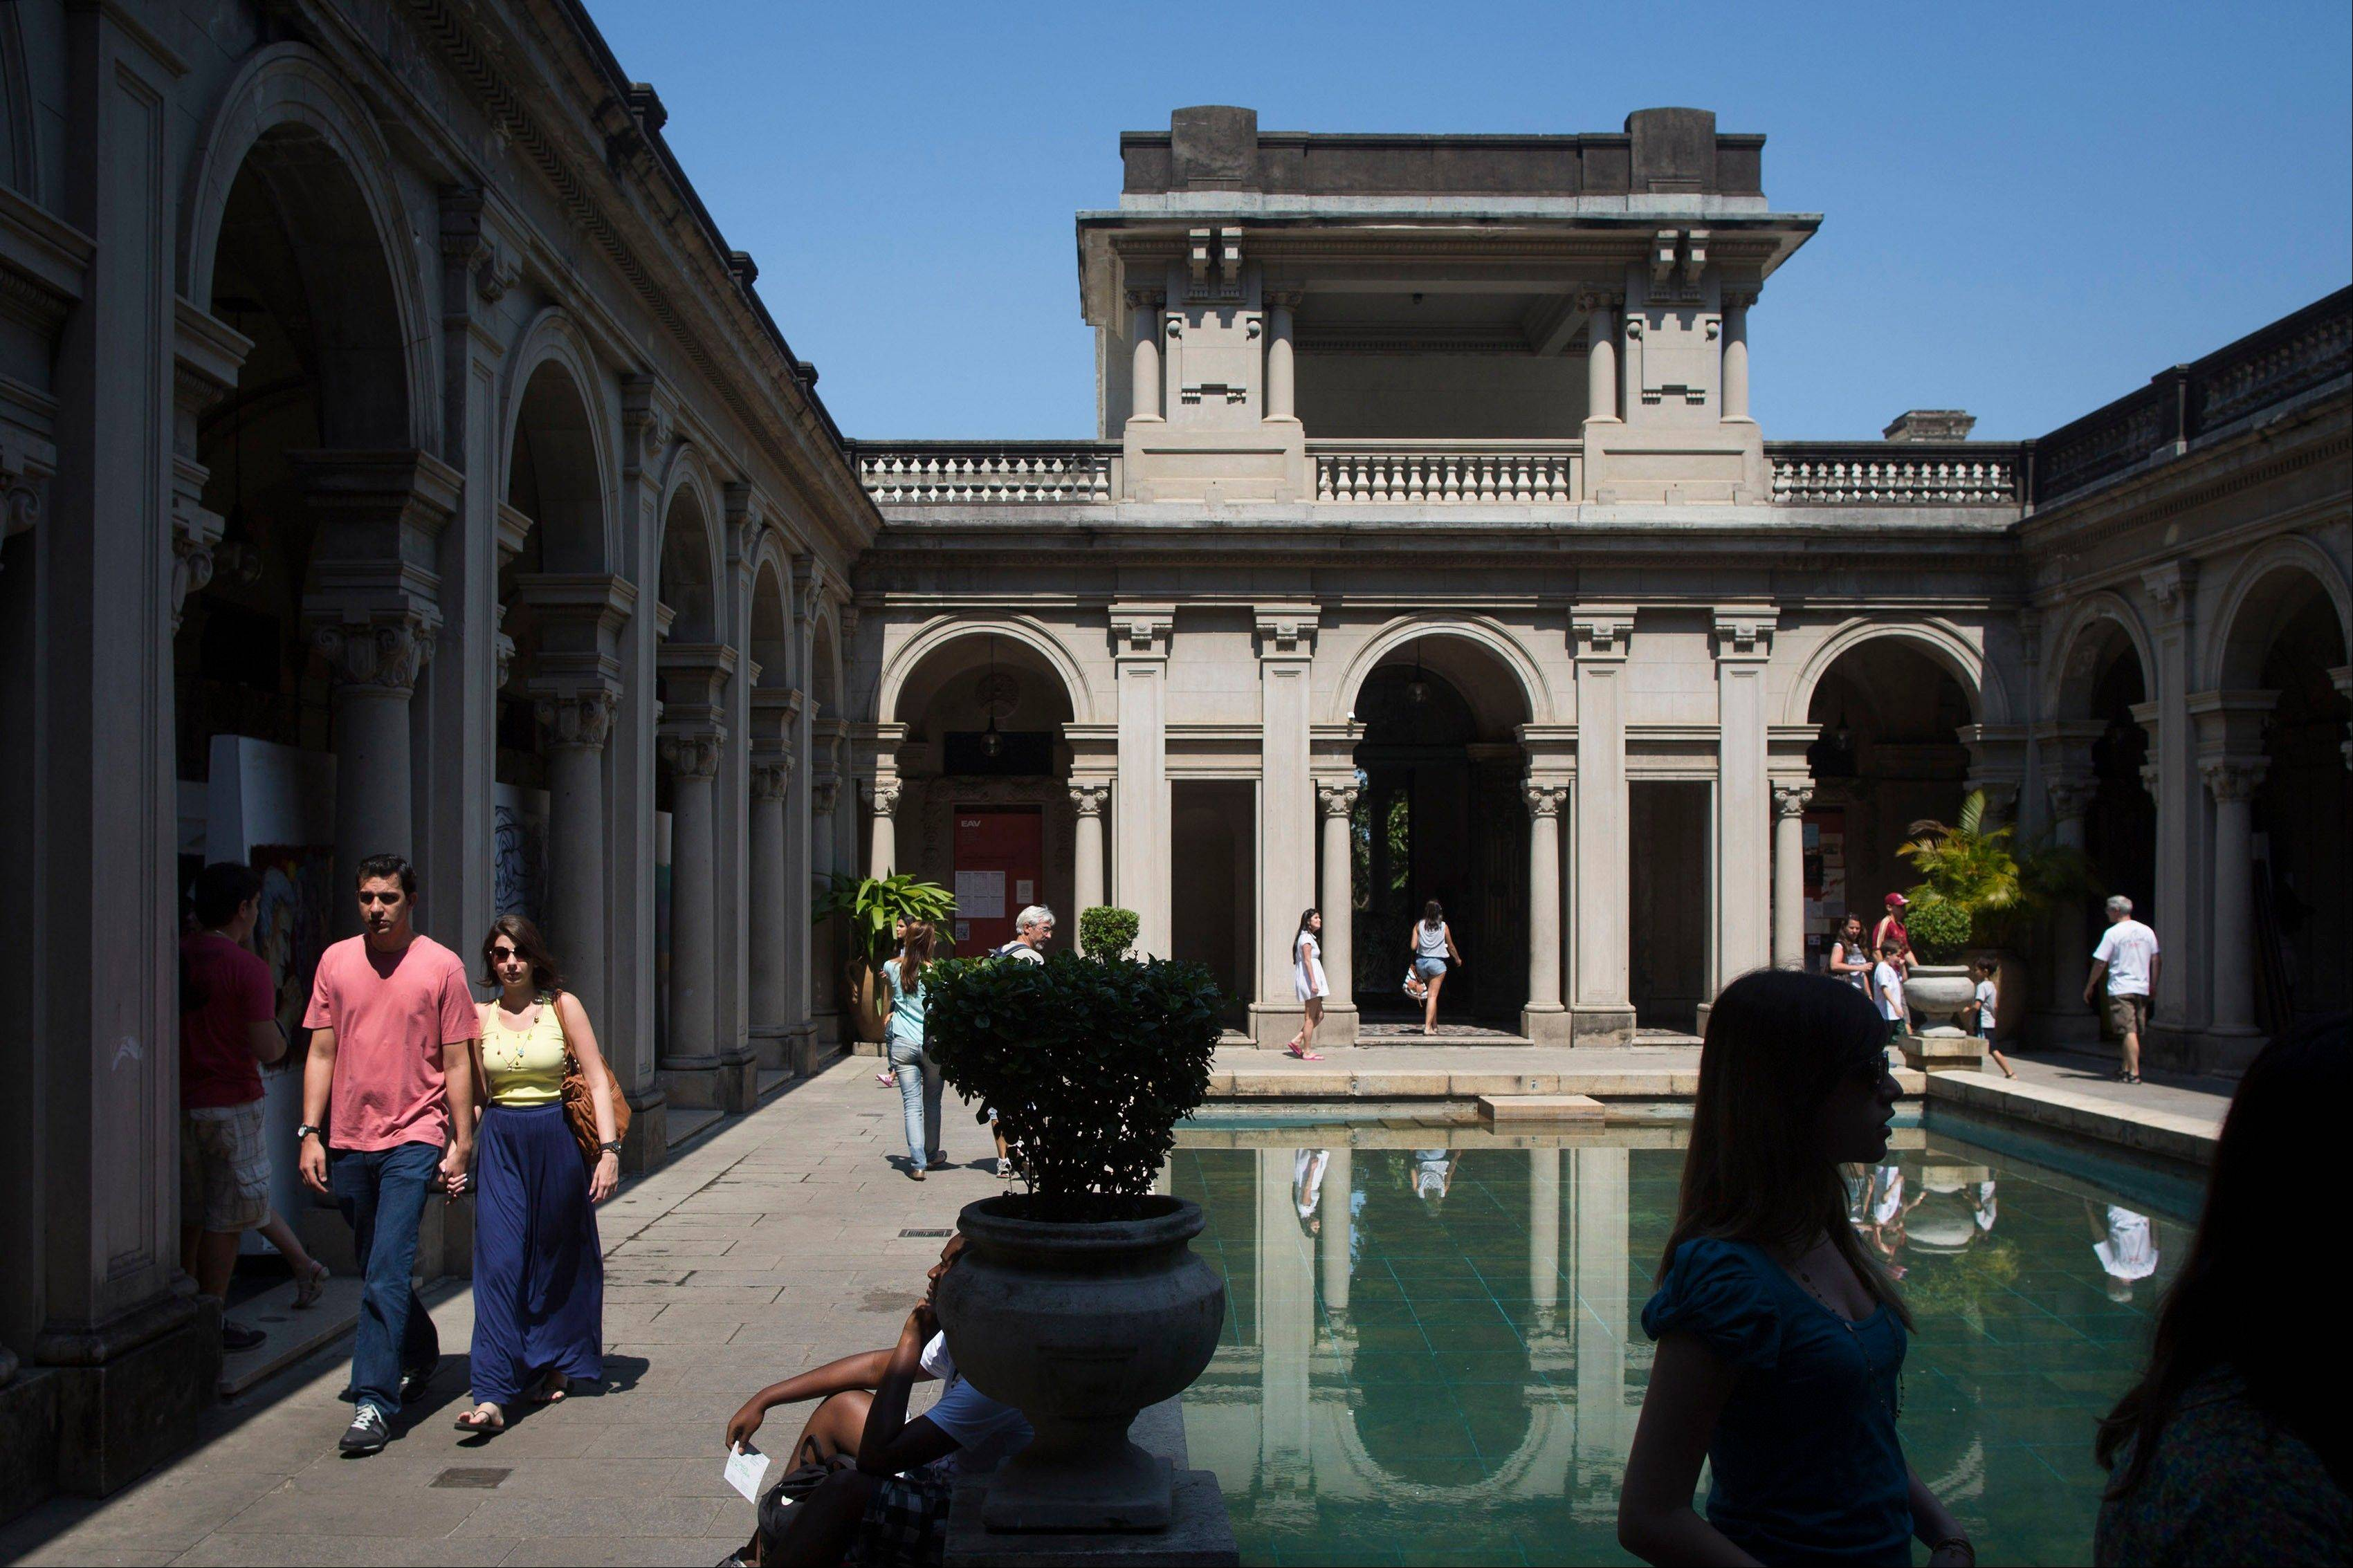 People visit an early 20th century mansion at Parque Lage in Rio de Janeiro, Brazil.